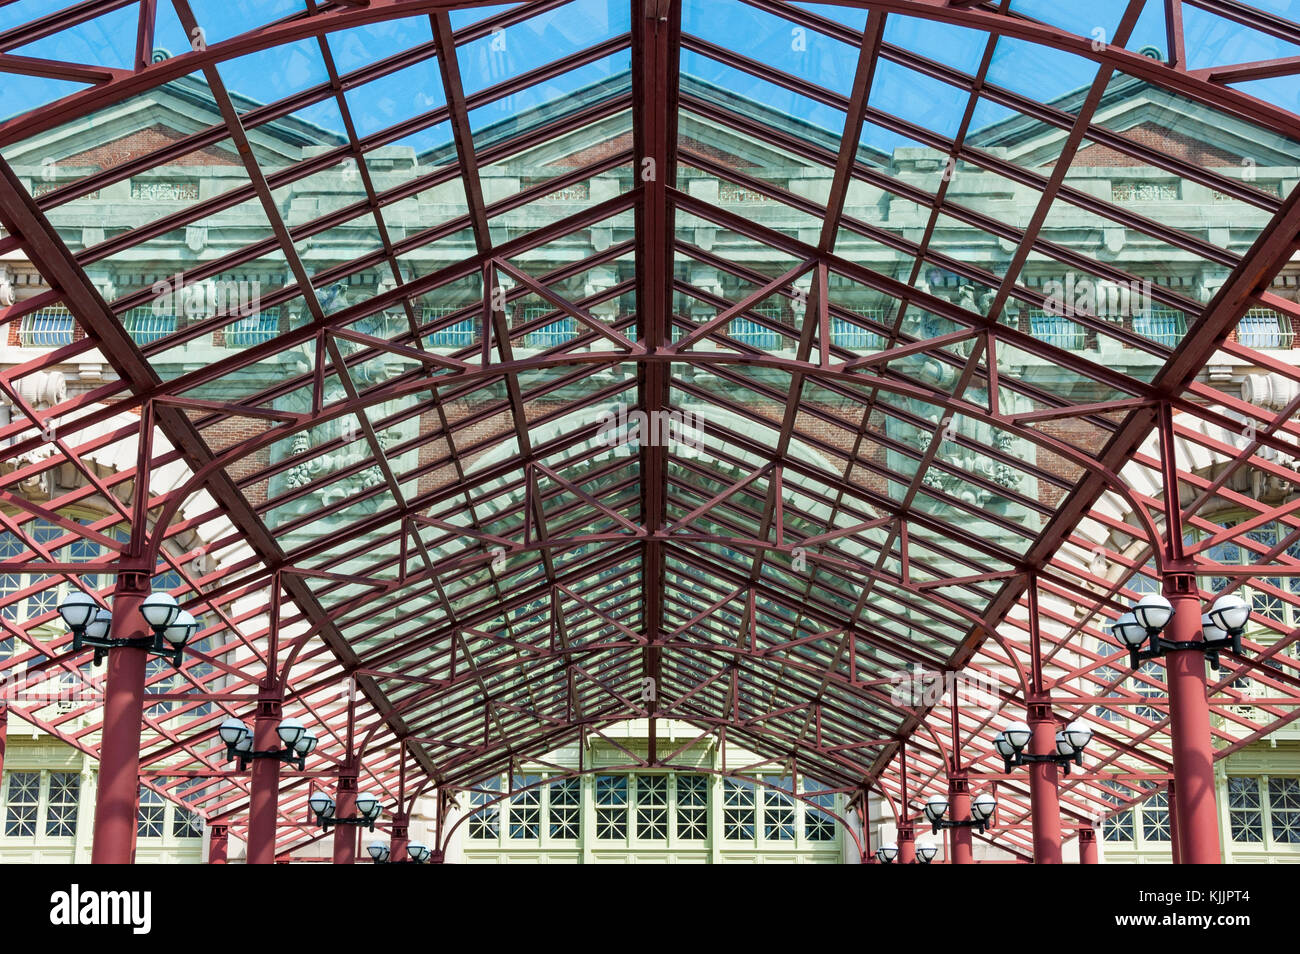 Exterior glass canopy at entrance of Ellis Island Immigration Museum Ellis Island National Park & Glass Canopy Entrance Stock Photos u0026 Glass Canopy Entrance Stock ...